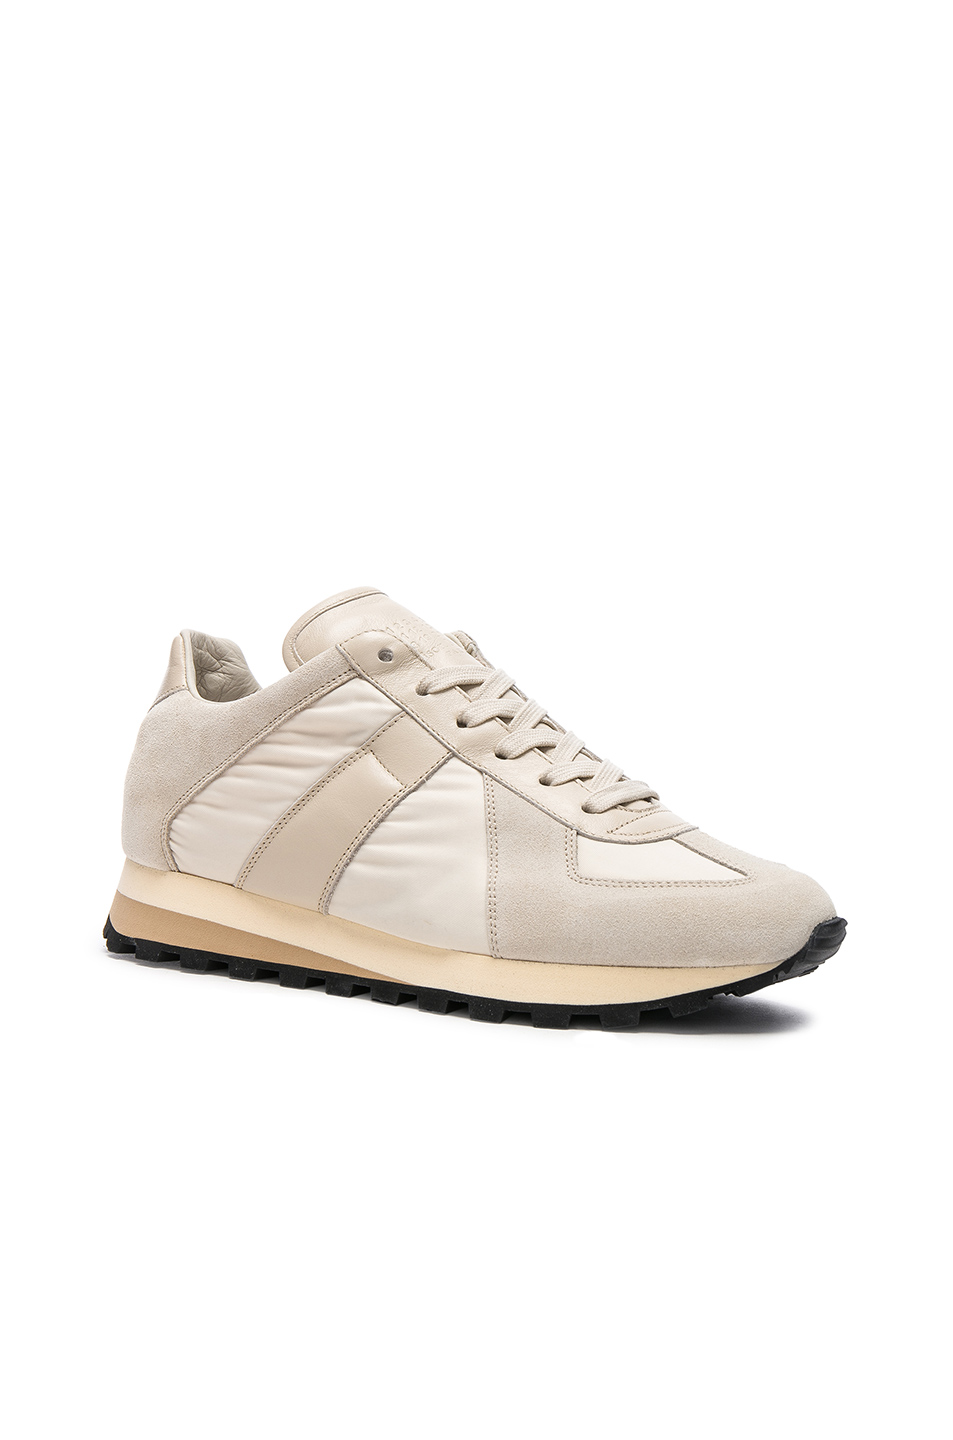 Maison Margiela Calfskin & Suede Retro Runner Sneakers in Neutrals,White